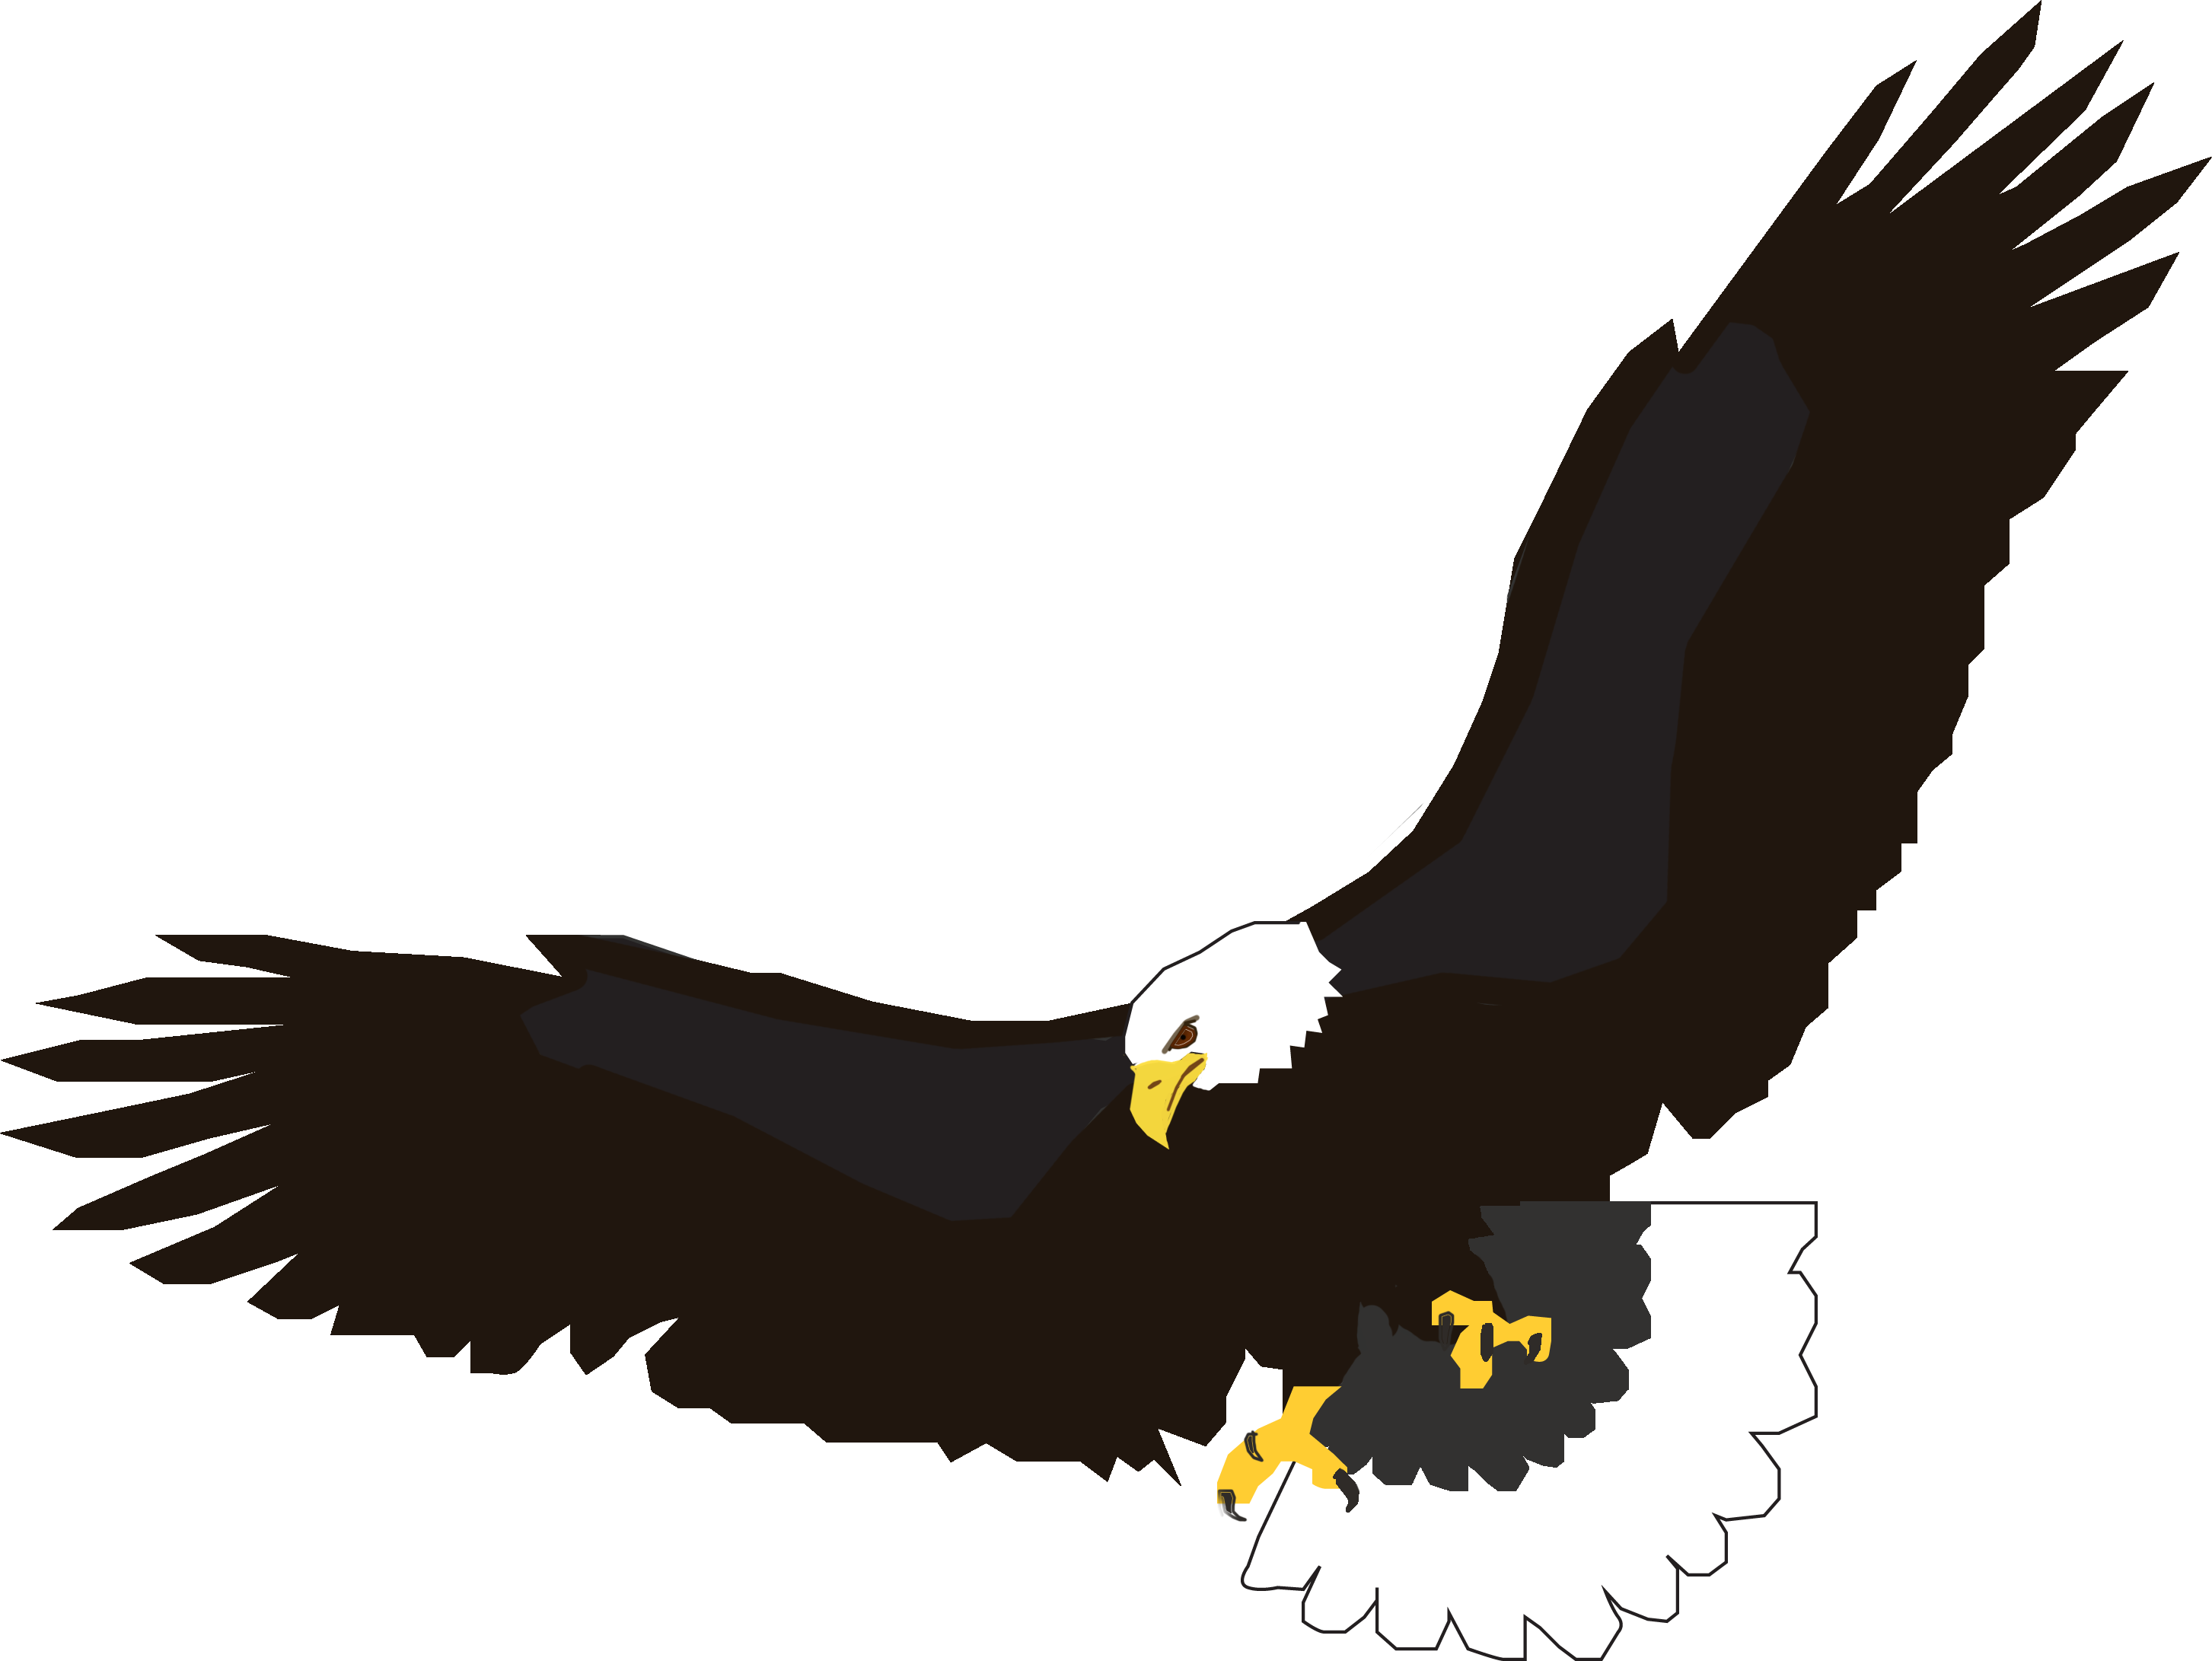 Native cliparts art pinterest. Wing clipart flying